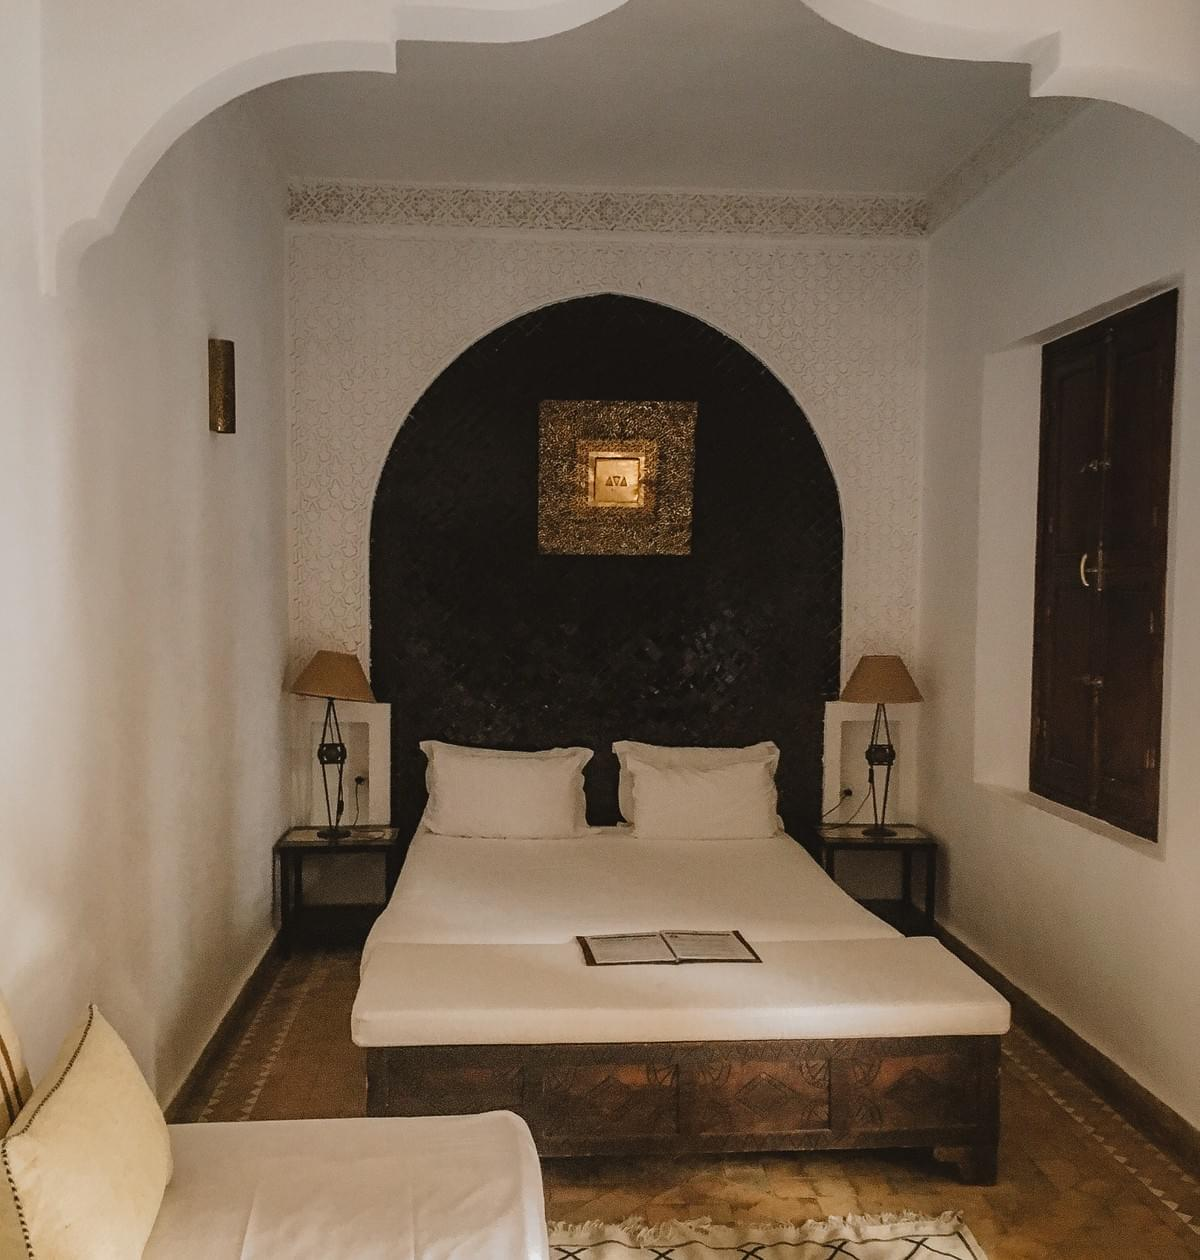 A room with white couch and pillows, a double bed with side tables and lamps on either side. with Moroccan detailing, crown molding, and gold center photo and closed window